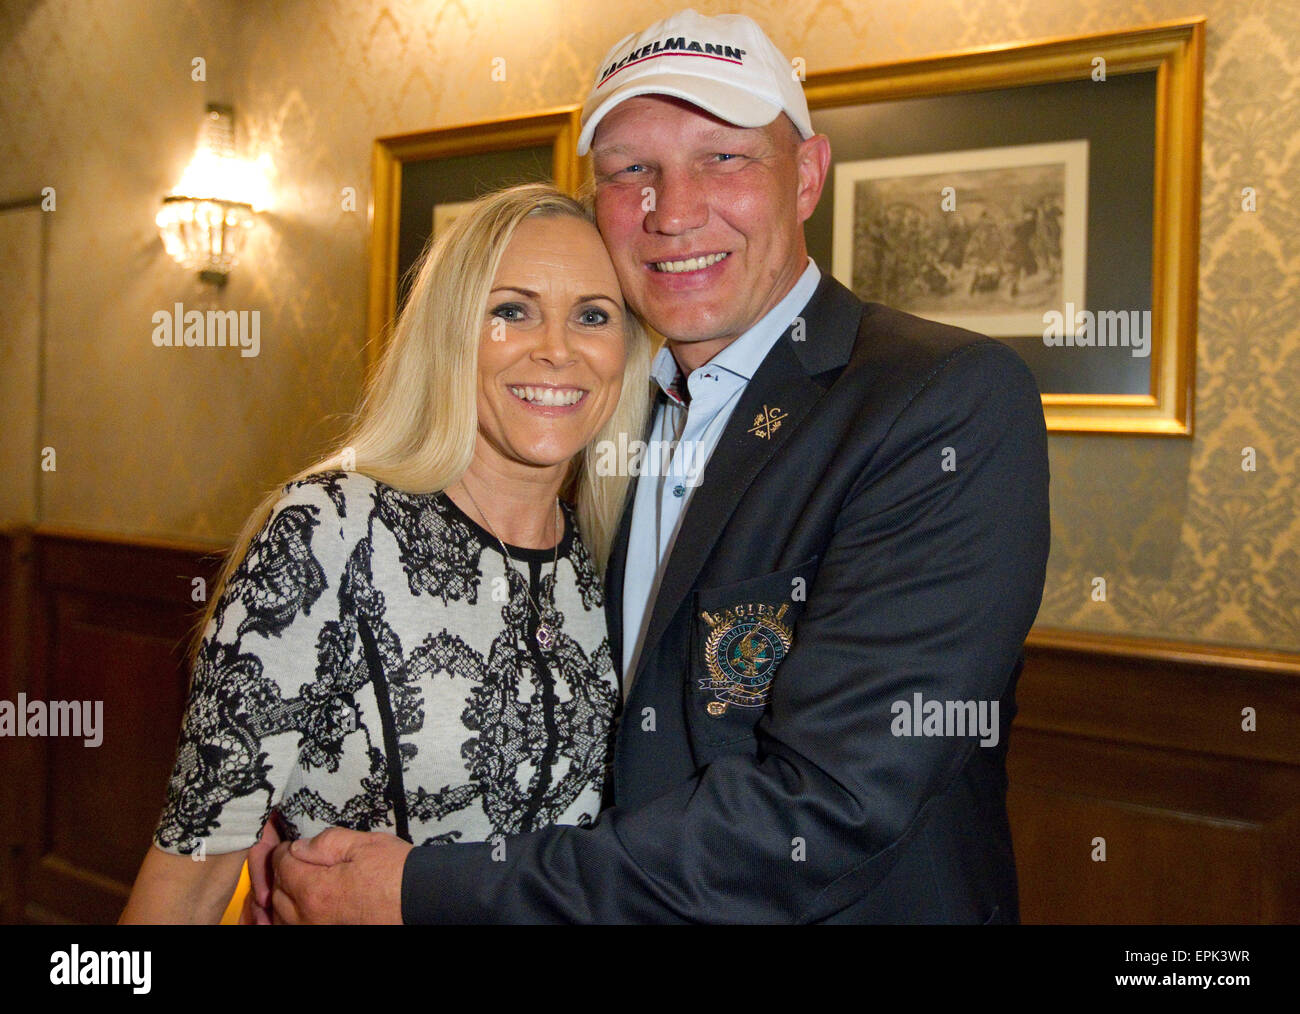 Rust, Germany - May 4, 2015: Eagles Charity Golf Cup and Gala at Golfclub Breisgau and Europa Park, Rust with ex - Stock Image